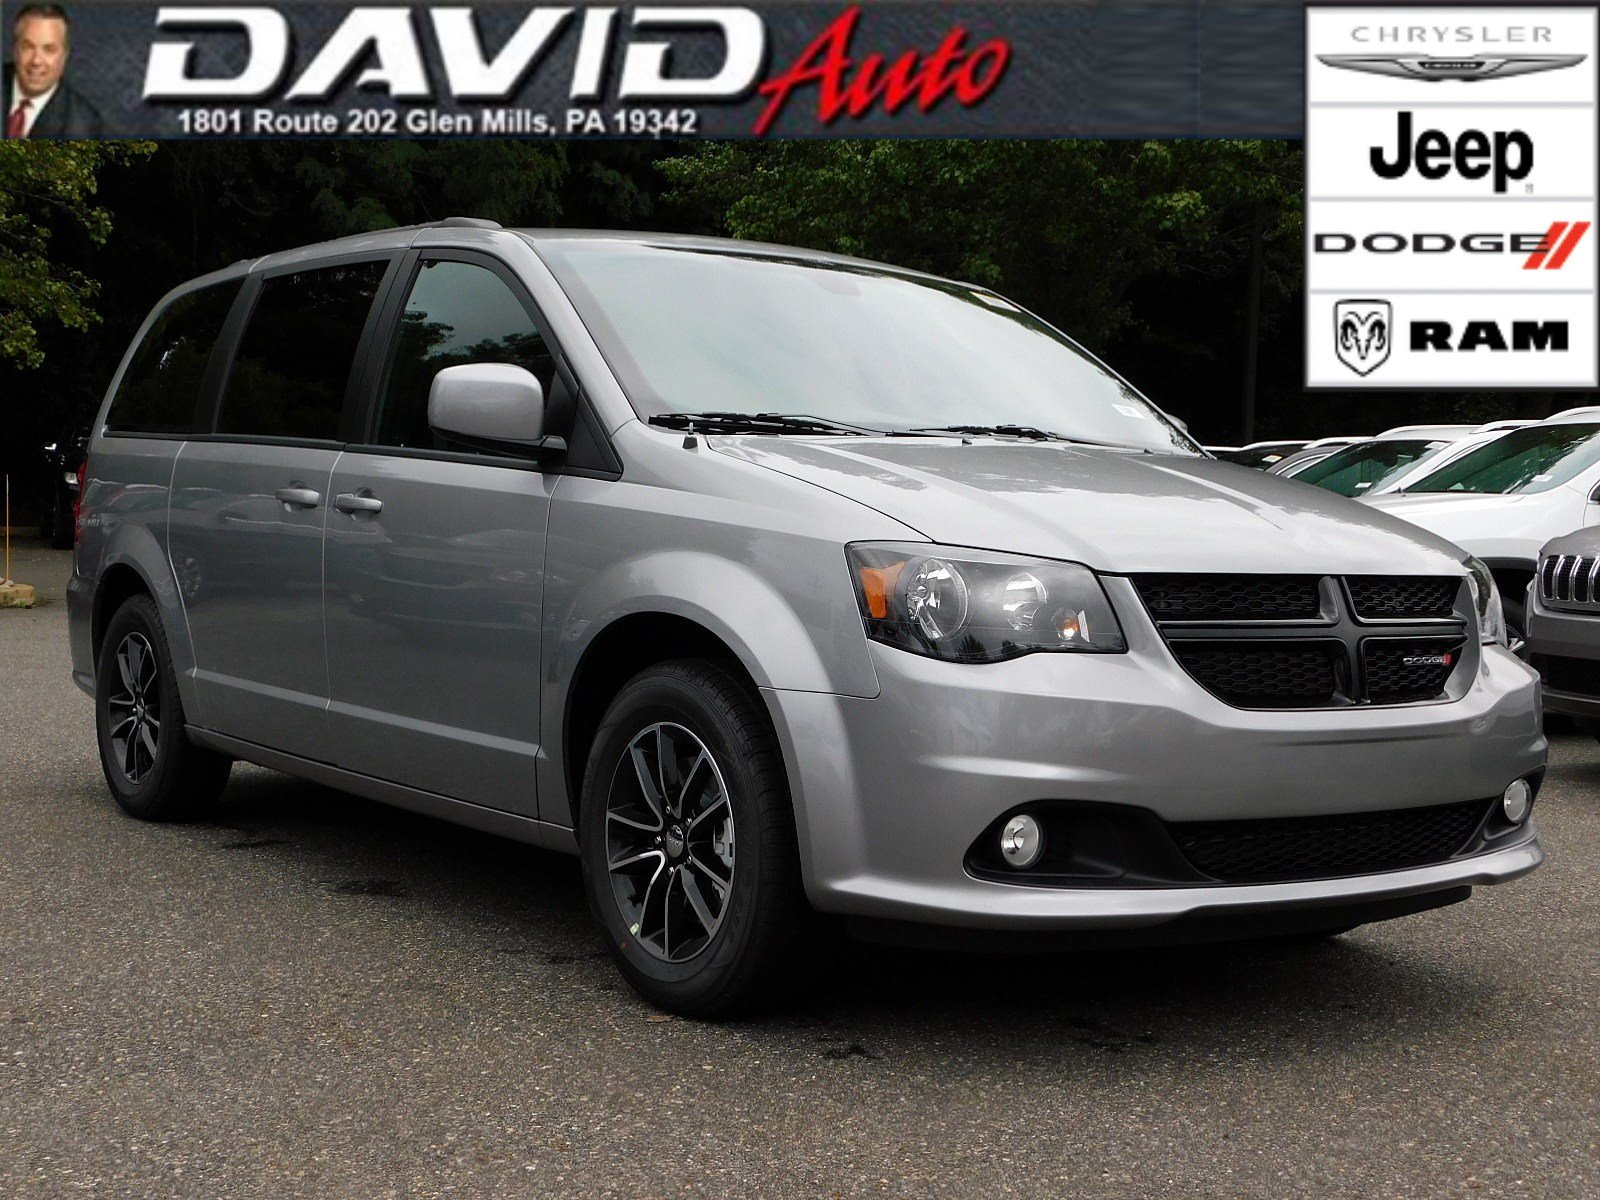 New 2019 Dodge Grand Caravan Se Plus Passenger Van In Glen Mills